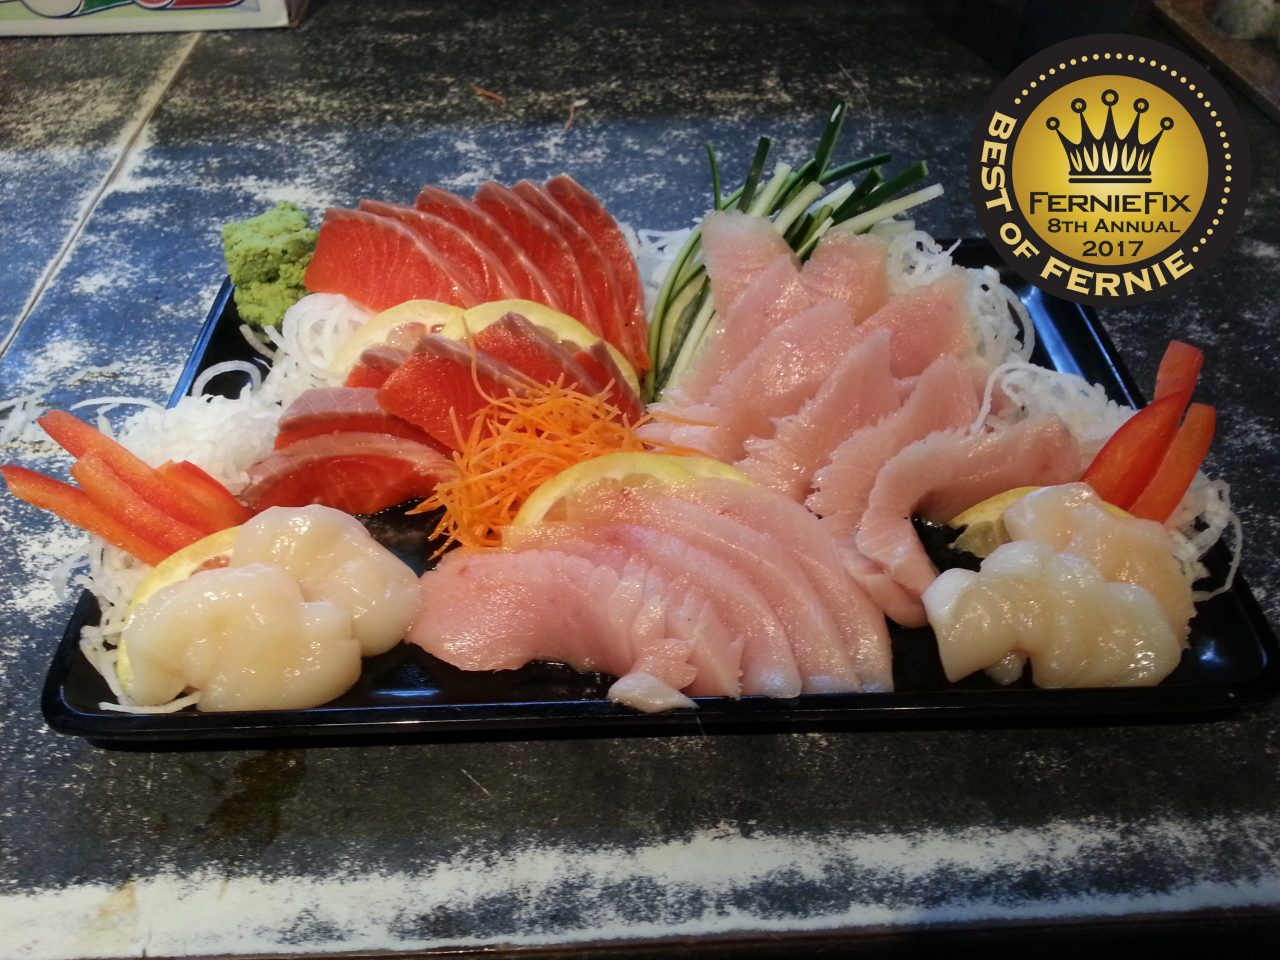 BEst-of-Fernie-sashimi-1280x960.jpg